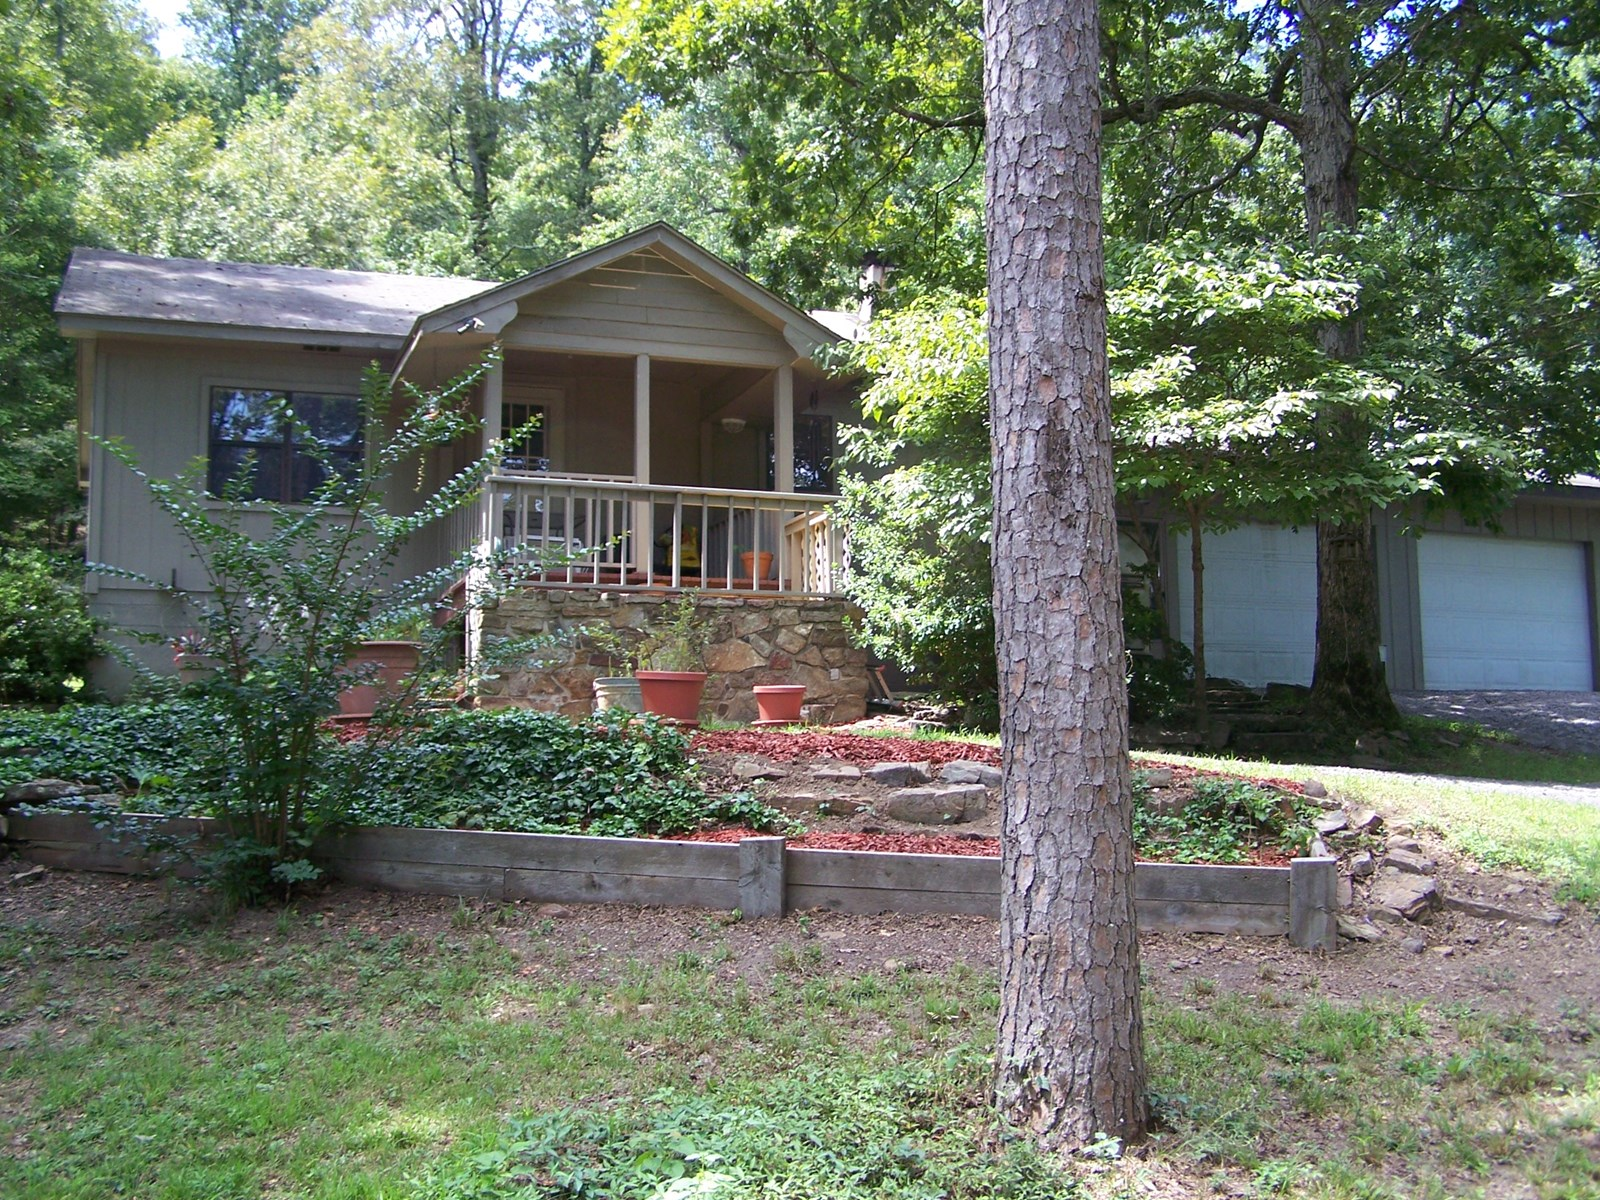 Country Home with Acreage For Sale in Searcy Co Arkansas